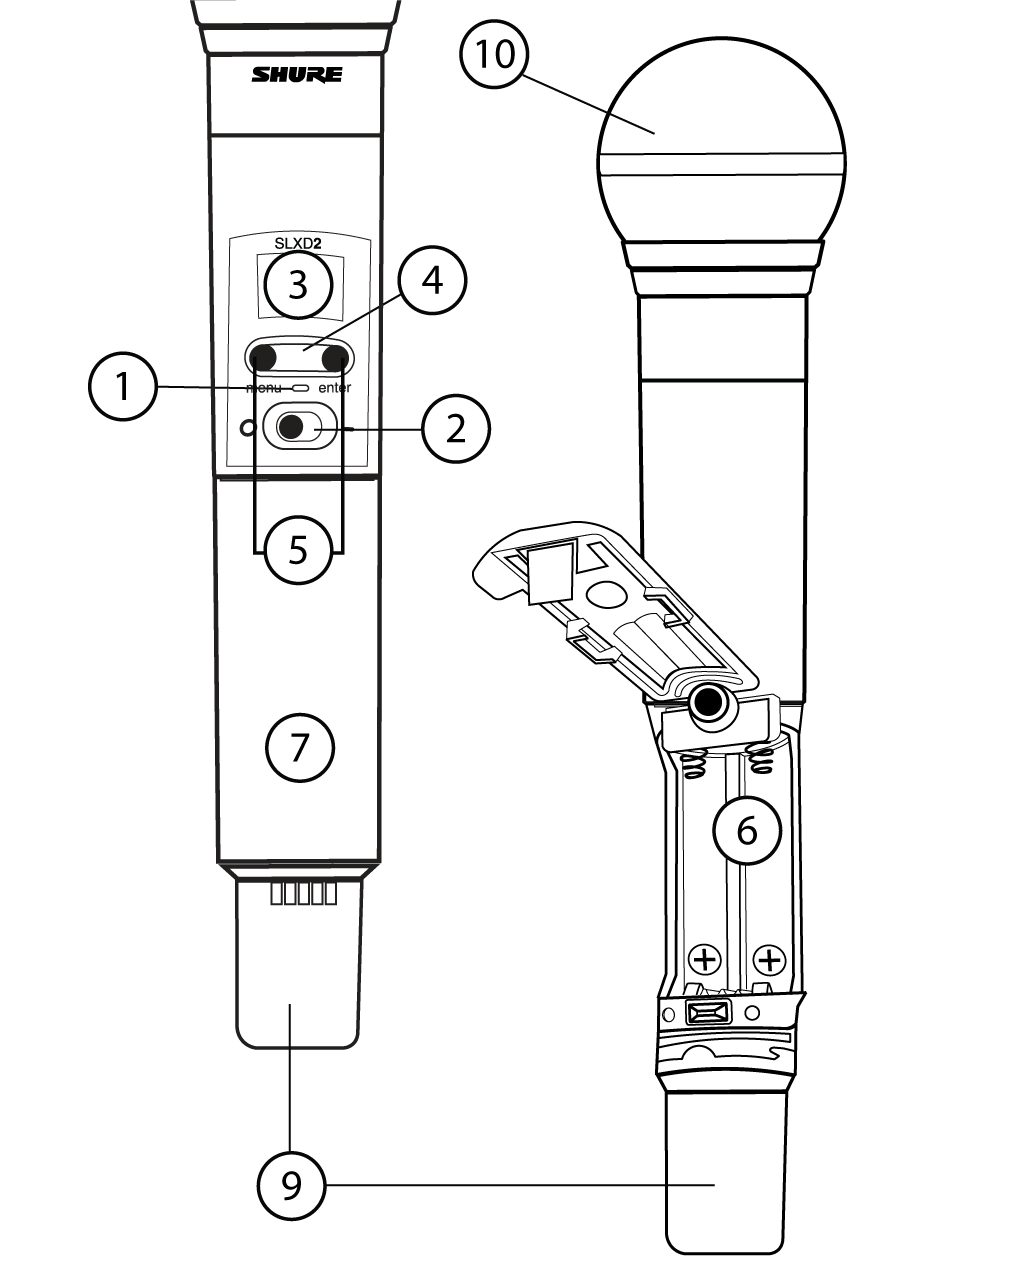 A diagram of the SLXD2 handheld transmitter, with numbers calling out each feature.